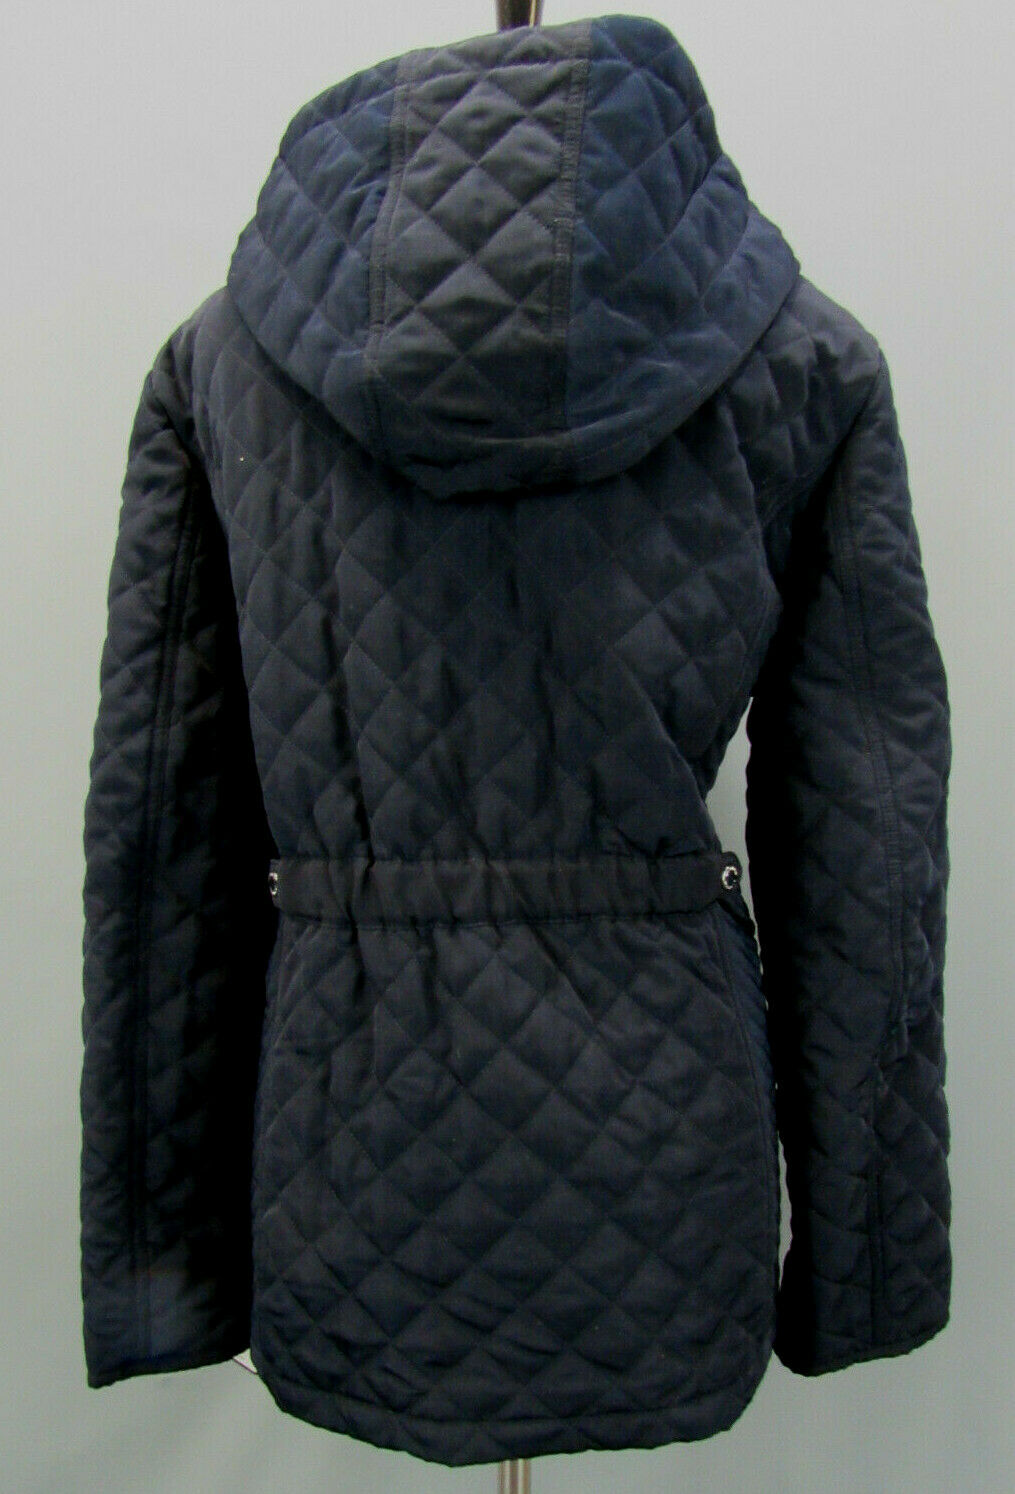 Laundry by Shelli Segal Water-Resistant Quilted Jacket Size XXL # 23A 58 N